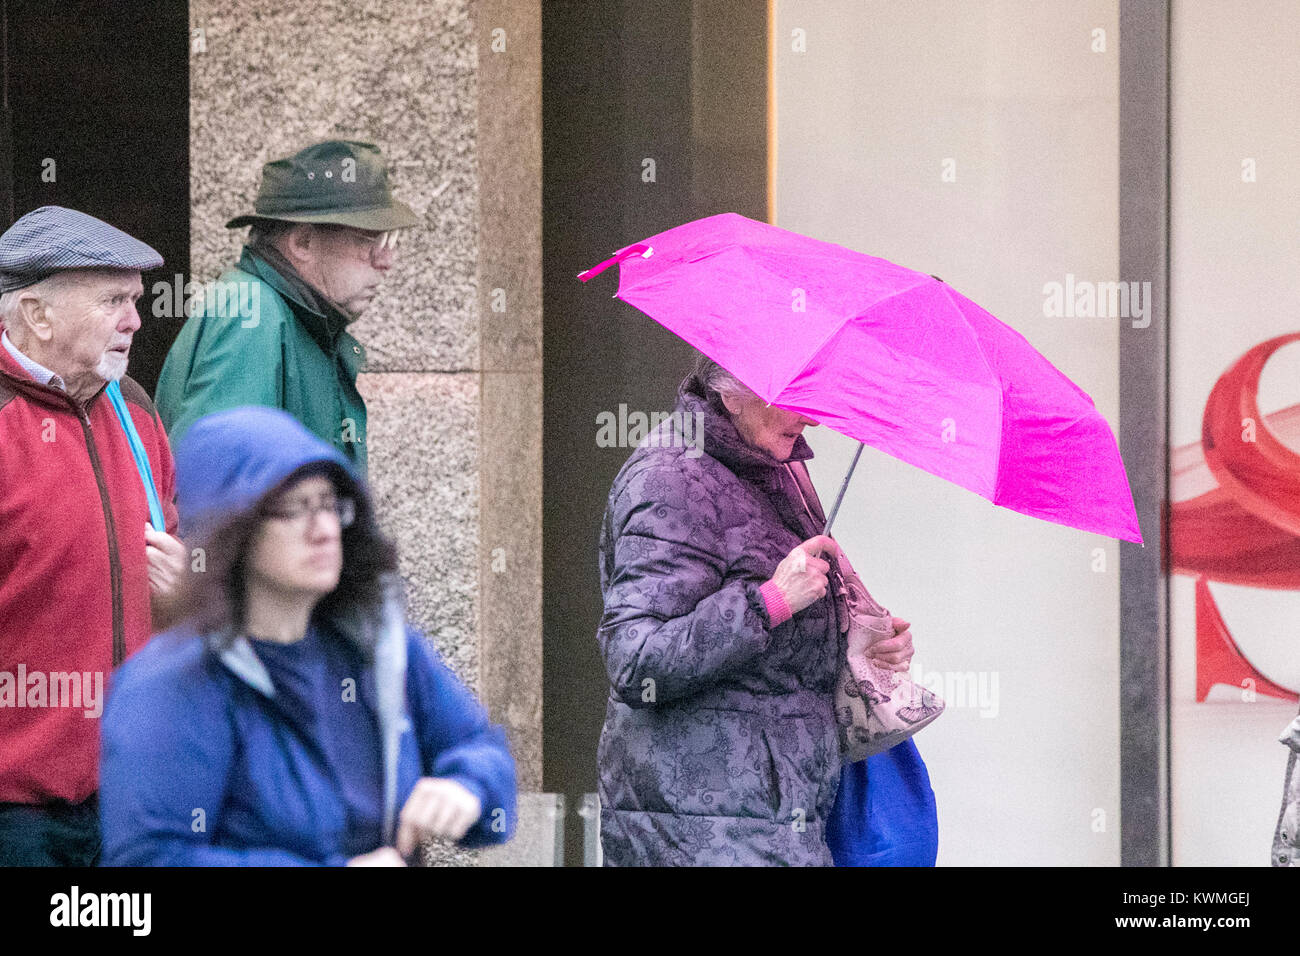 Southport, Merseyside. 4th jan, 2018. UK Weather: Heavy rain pours down on hardy shoppers venturing into Southport - Stock Image